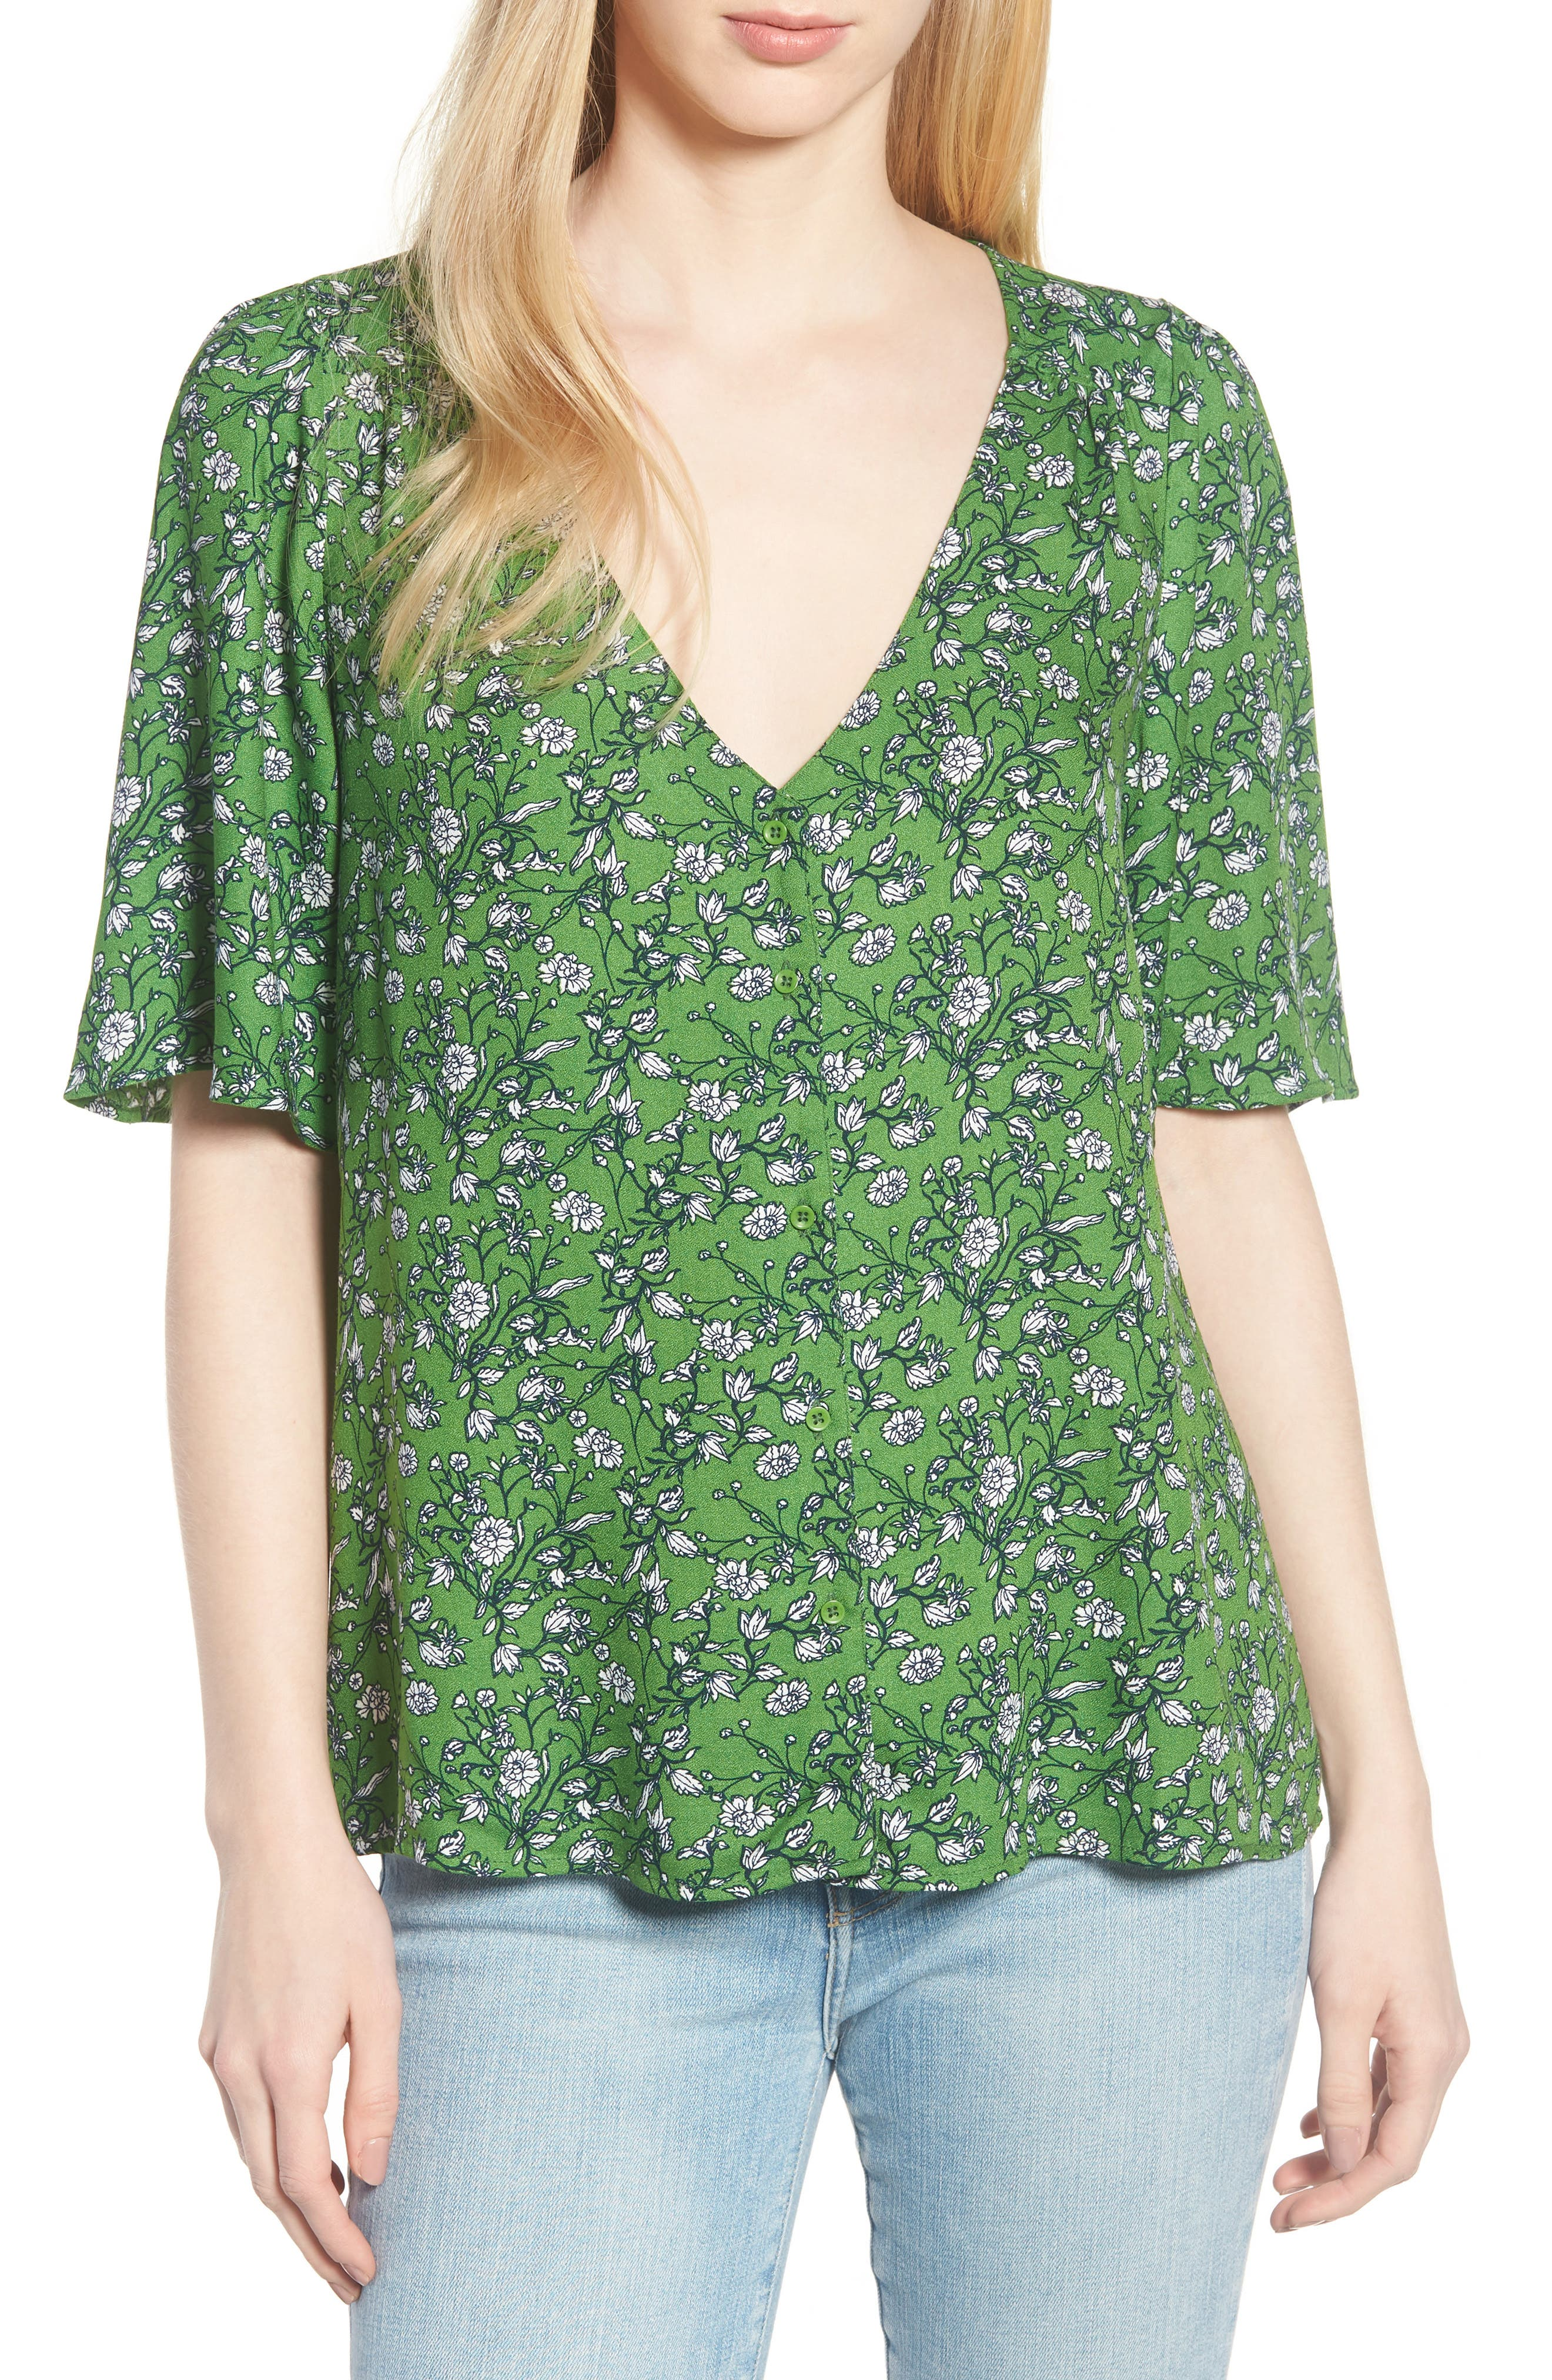 Button Front V-Neck Top,                         Main,                         color, GREEN CANOPY FLOWER BRANCHES